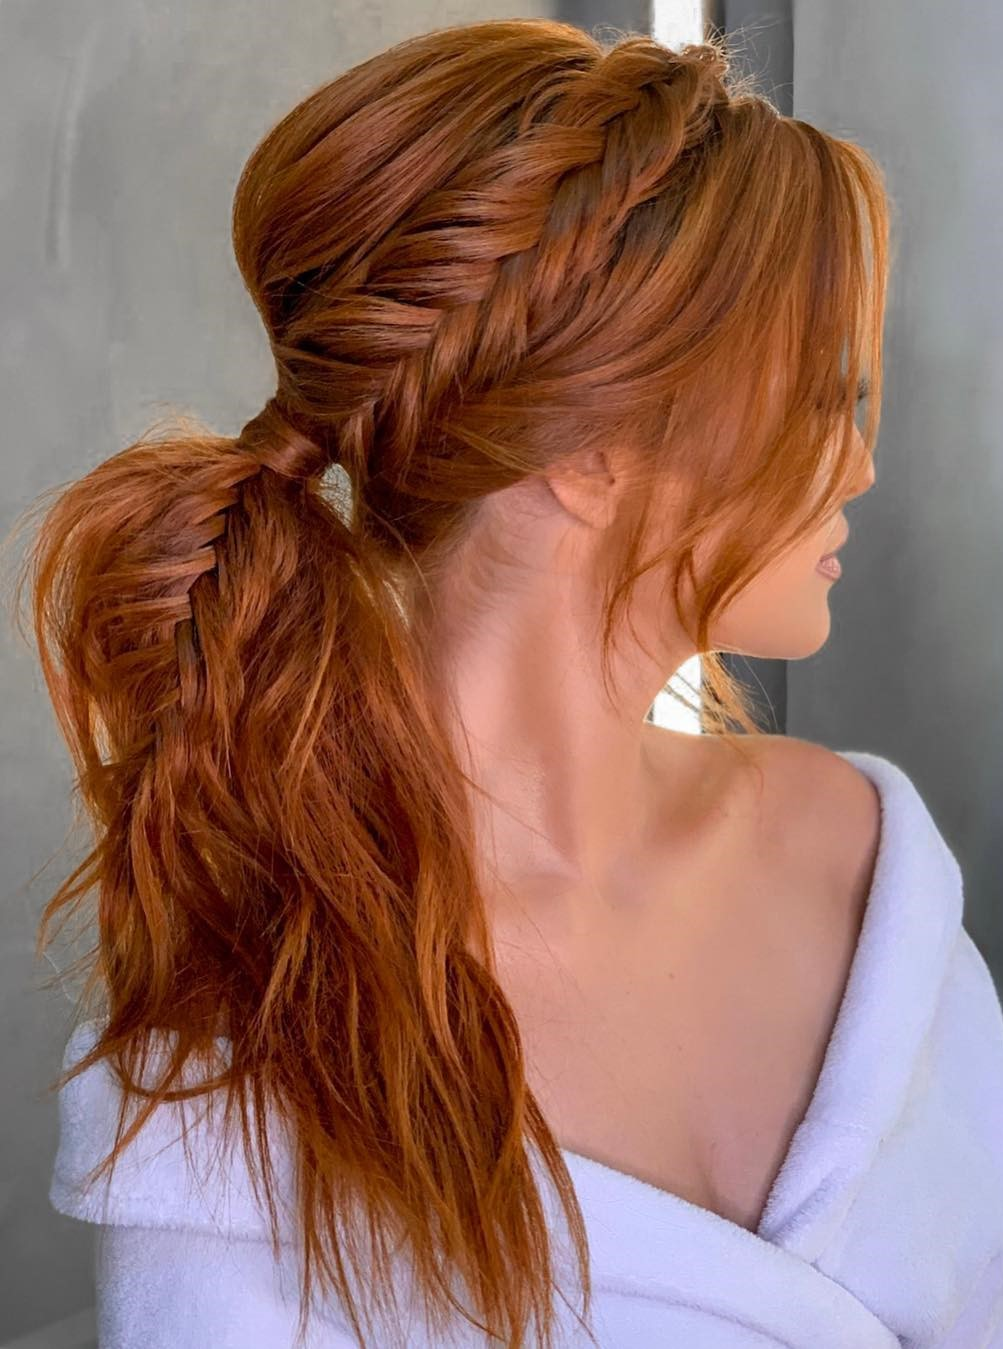 Braided Ponytail with Bangs